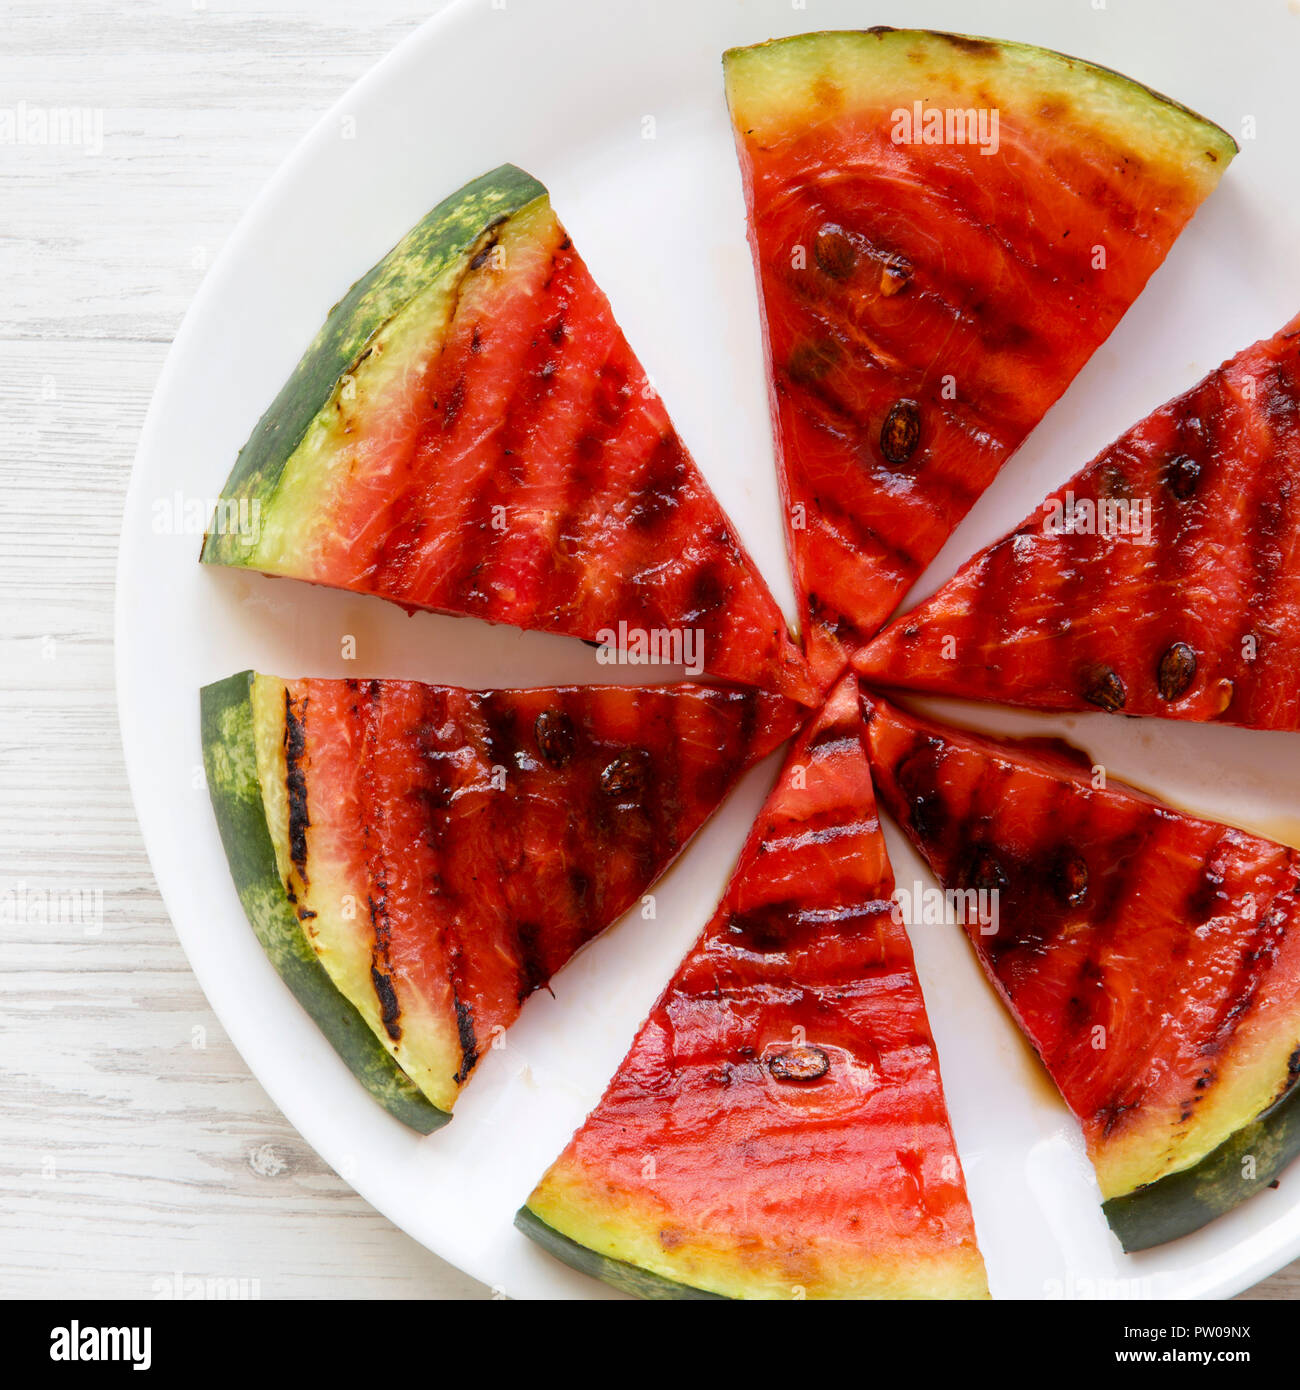 How Many Slices In Round Table Pizza.Many Slices Of Grilled Watermelon On A White Round Plate On White